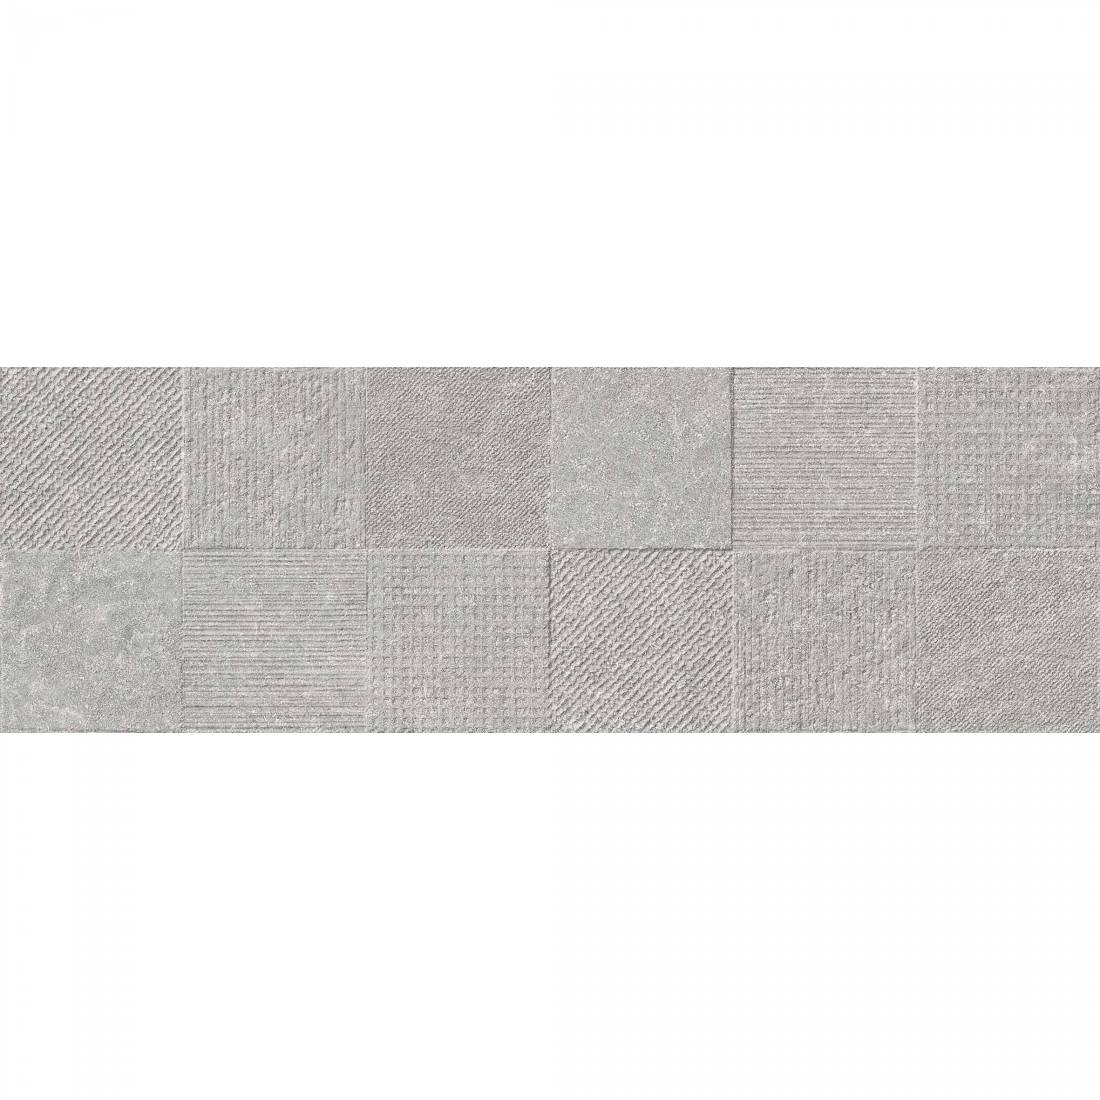 Olite Liebanna Decor 20x60 Gris Matt 1